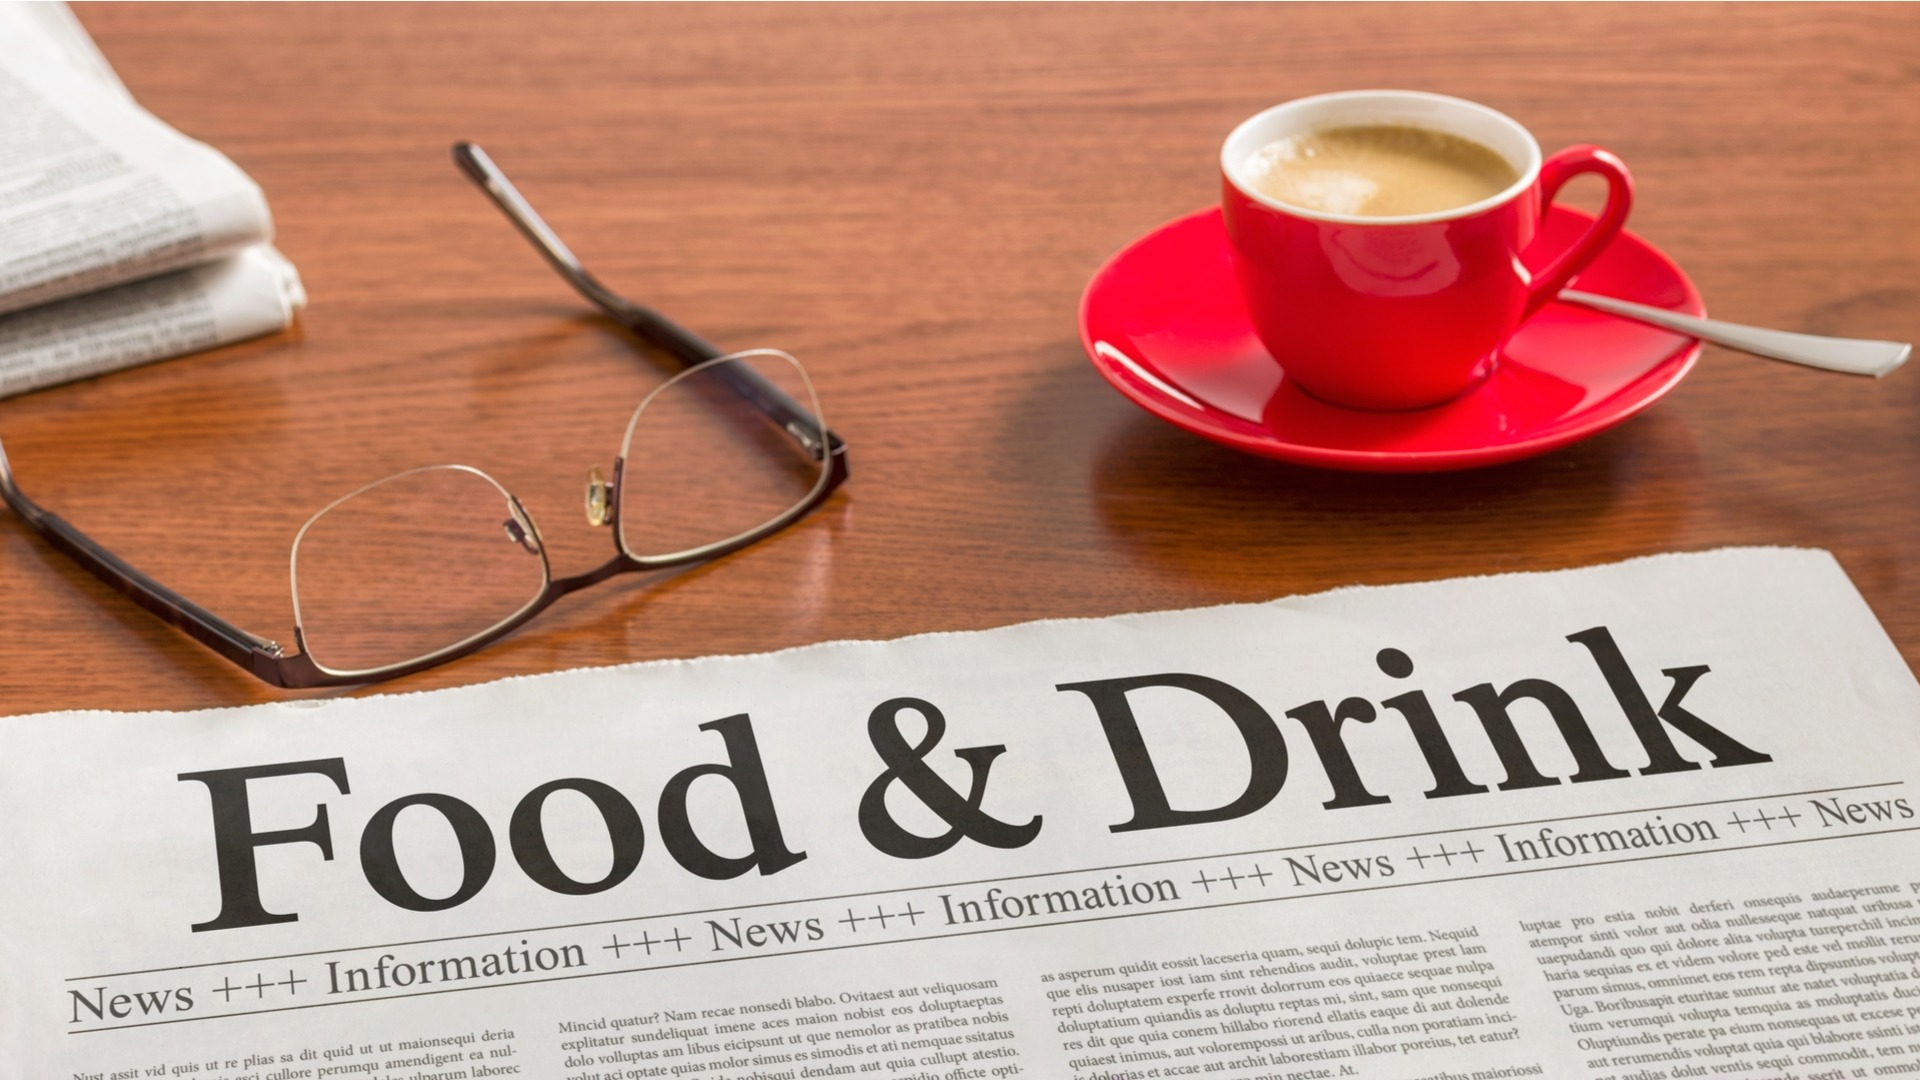 Food and drink newspaper